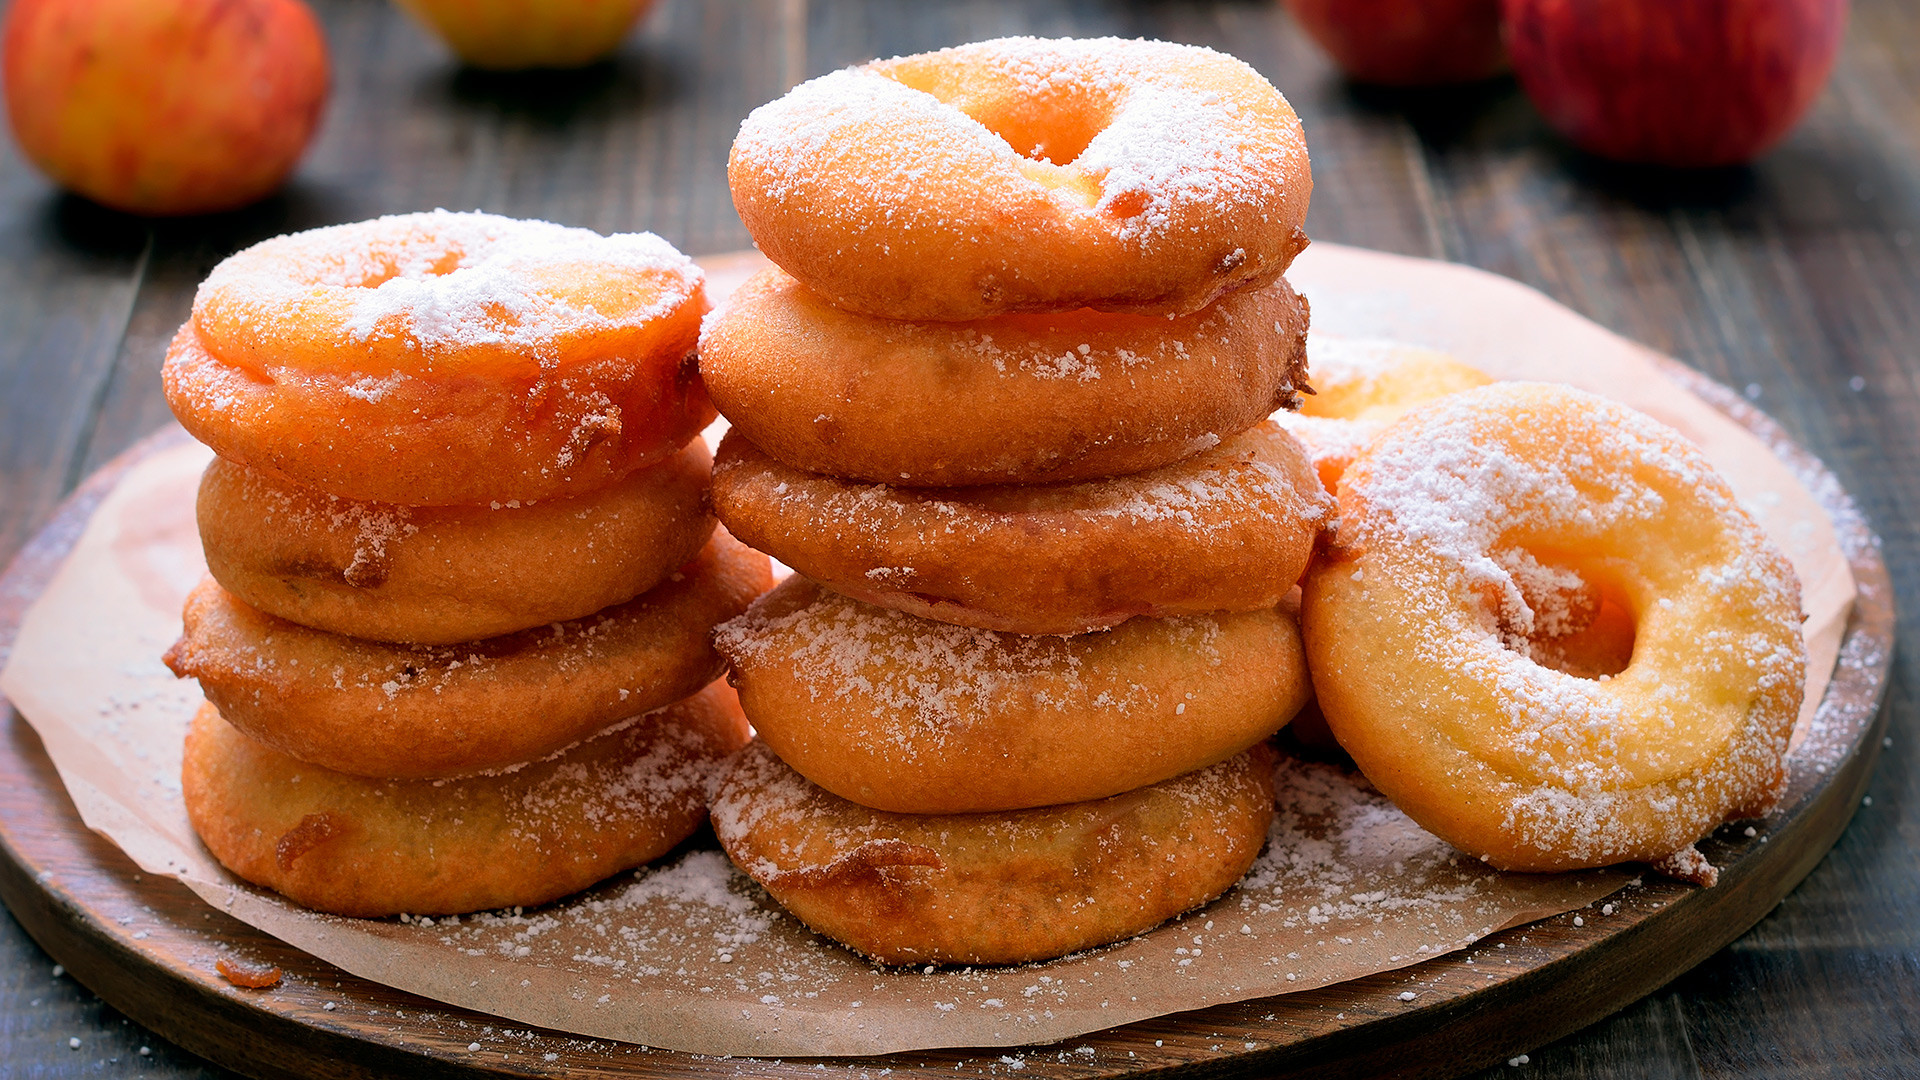 Have you ever try Moscow donuts?